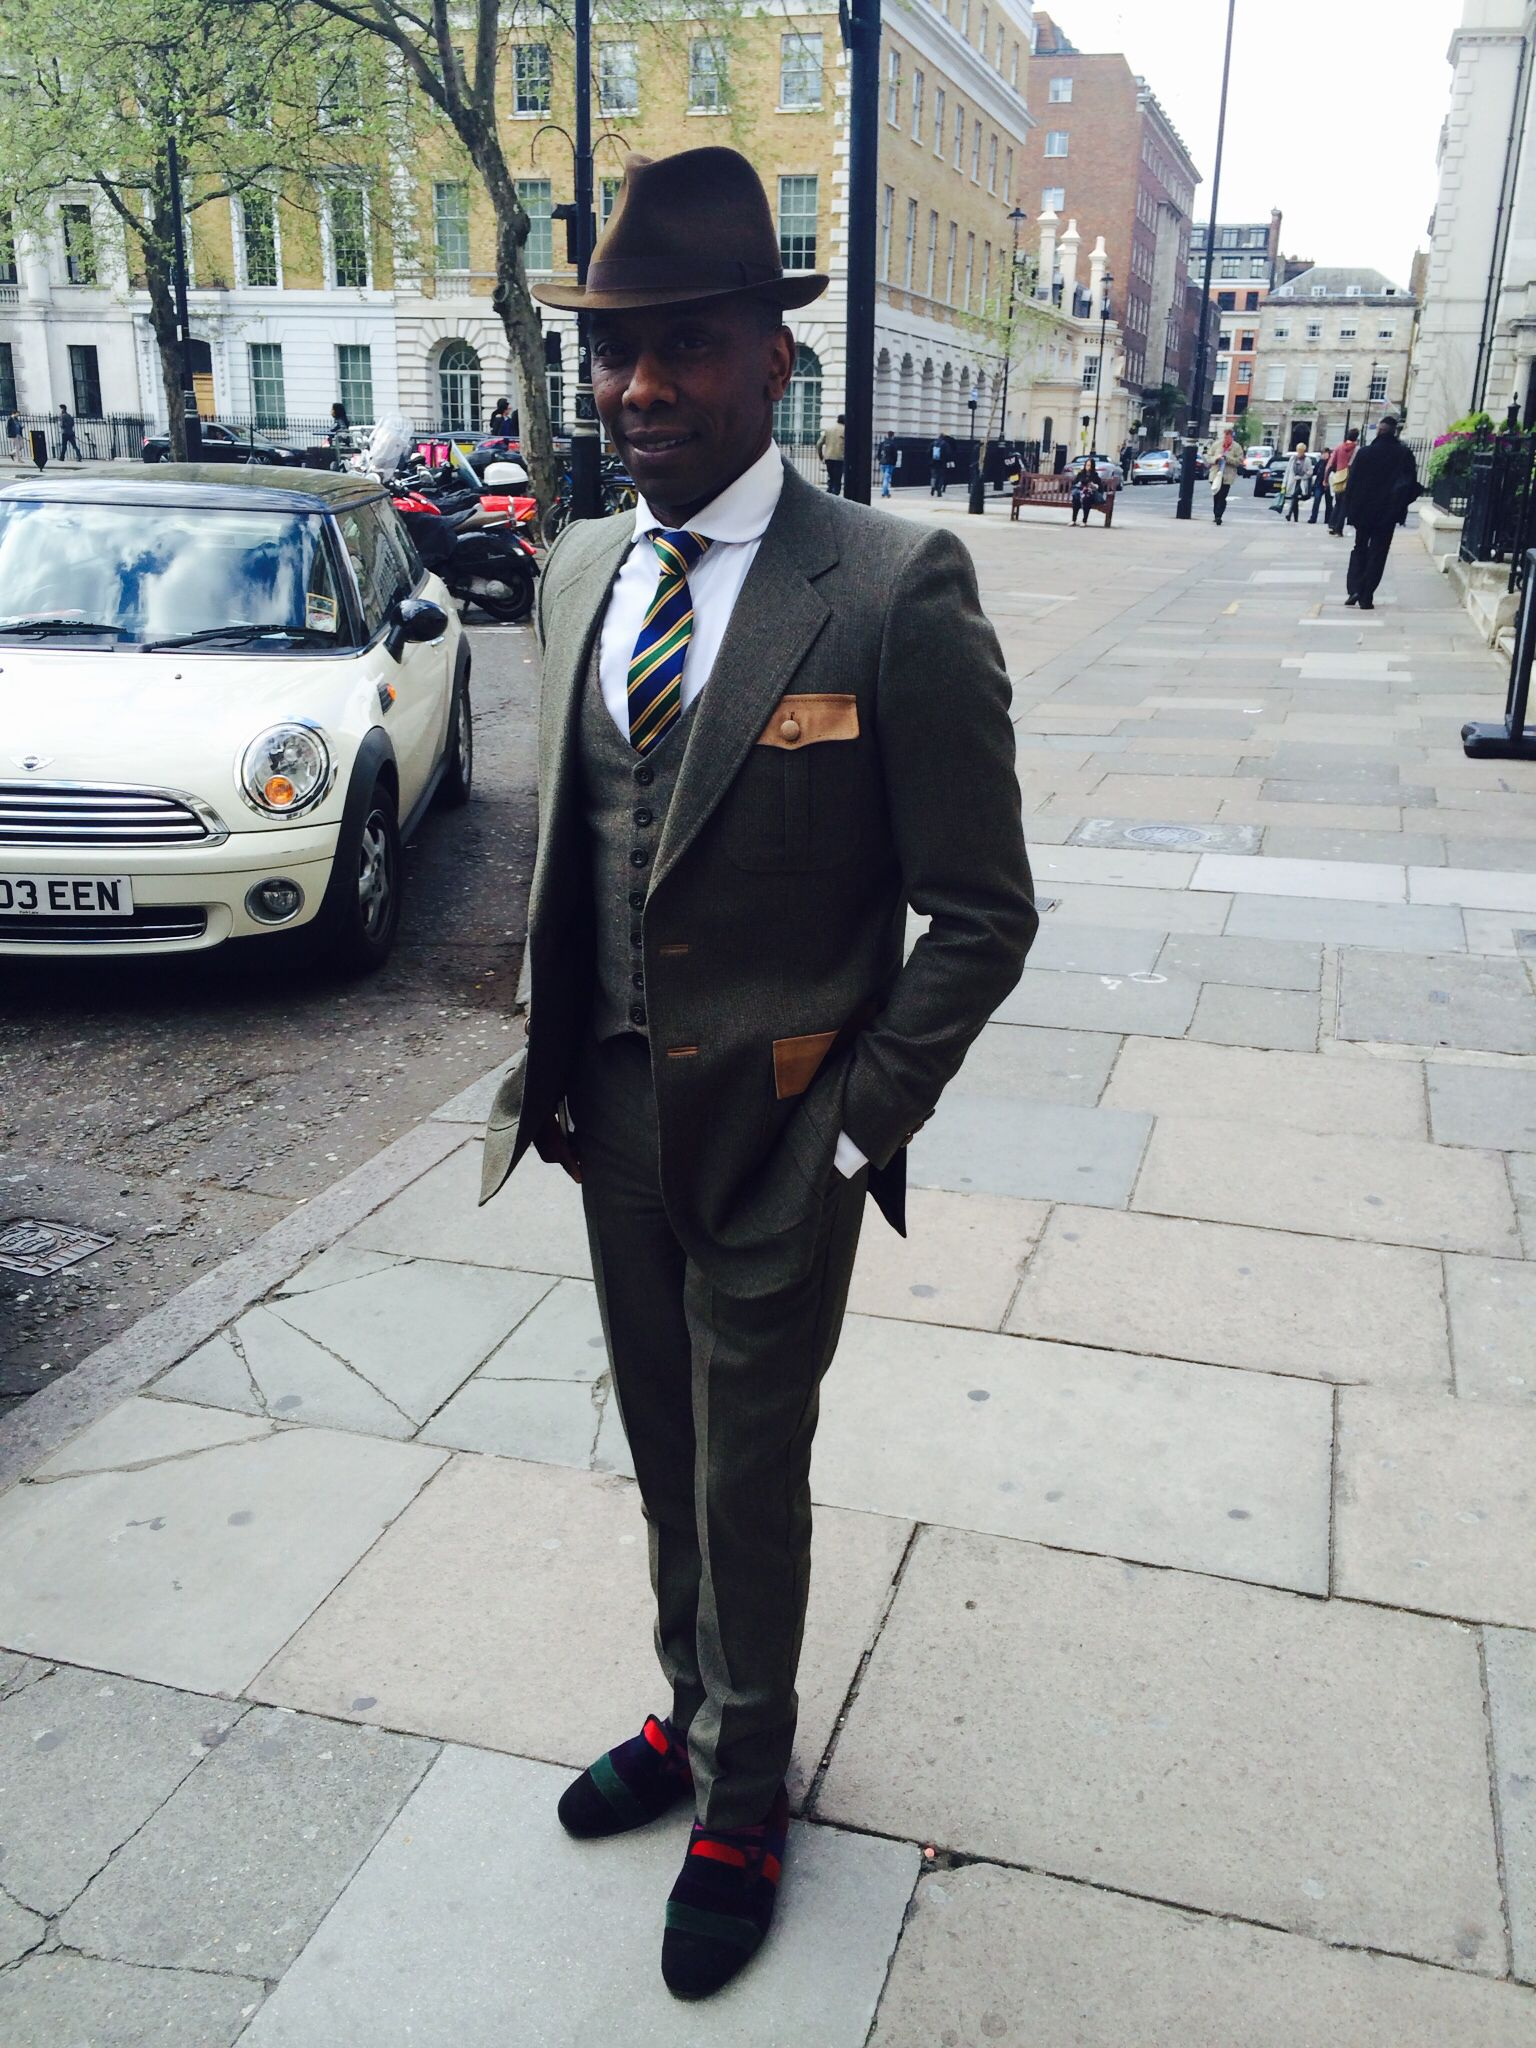 One of the best dressed man on earth.. Watch and learn boys.. Dark green suits with brown pocket details, stripy shoes and socks! Just an other normal Friday in the office!! For more fashion inspiration and style tips check out http://www.stylecoachnyc.com